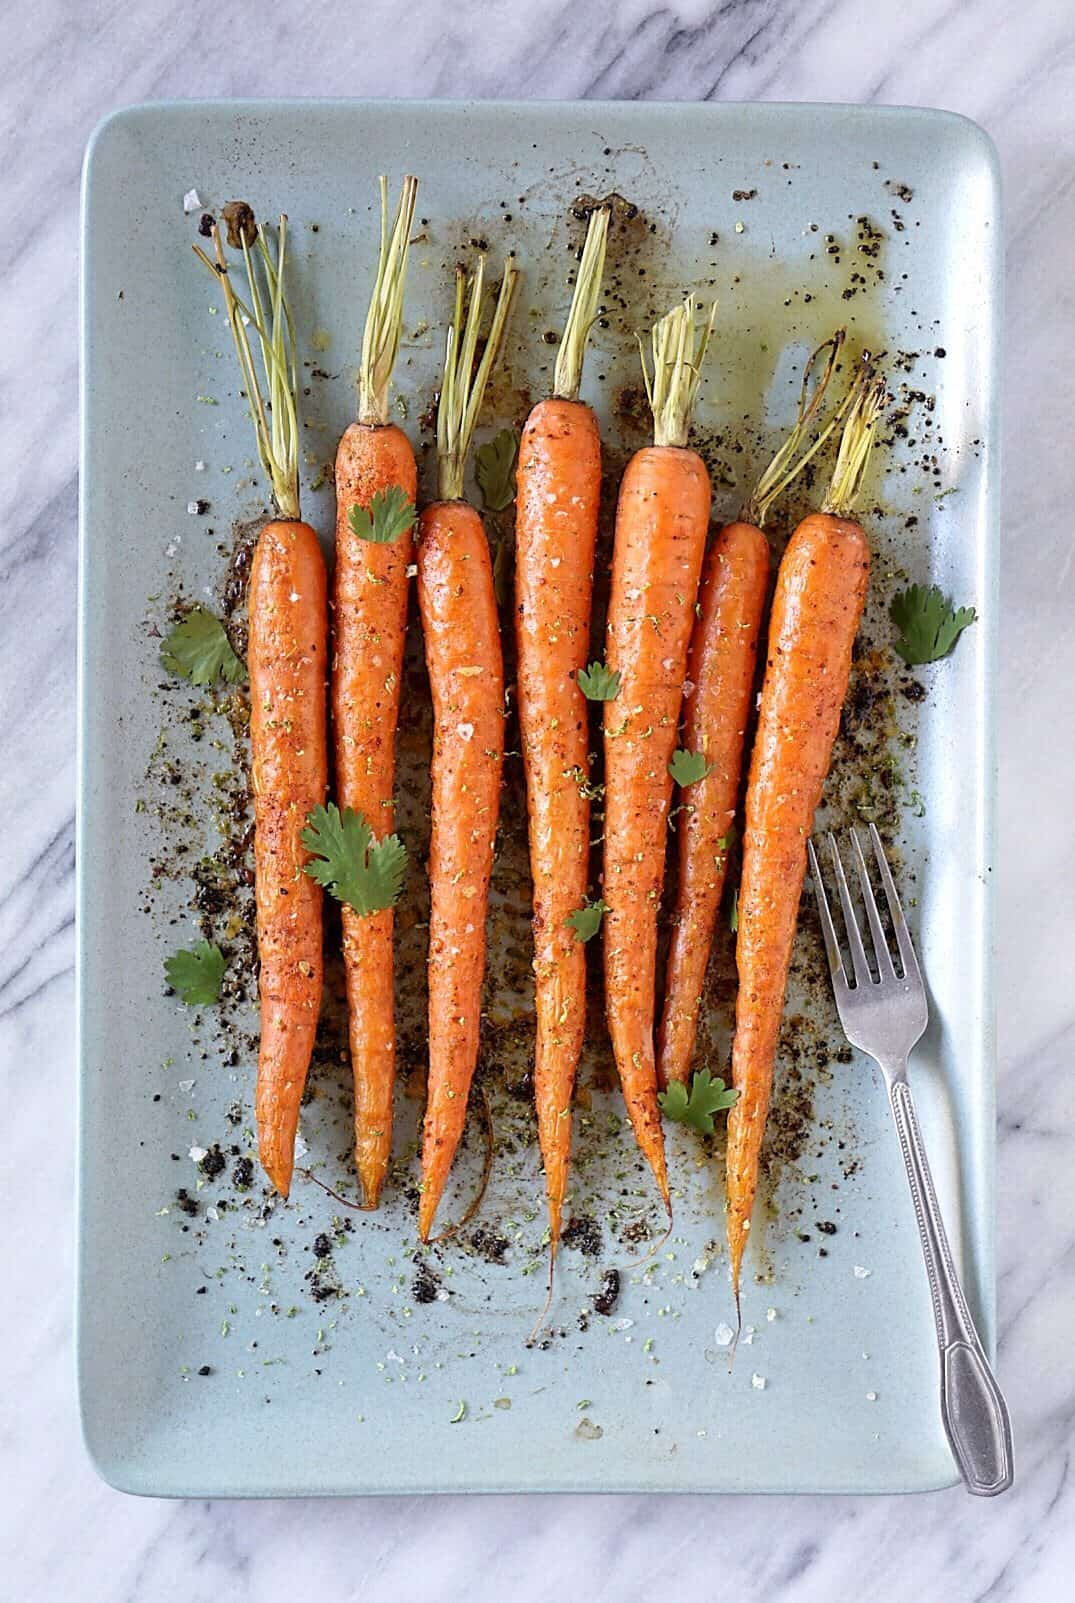 Chili lime roasted carrots on a blue platter